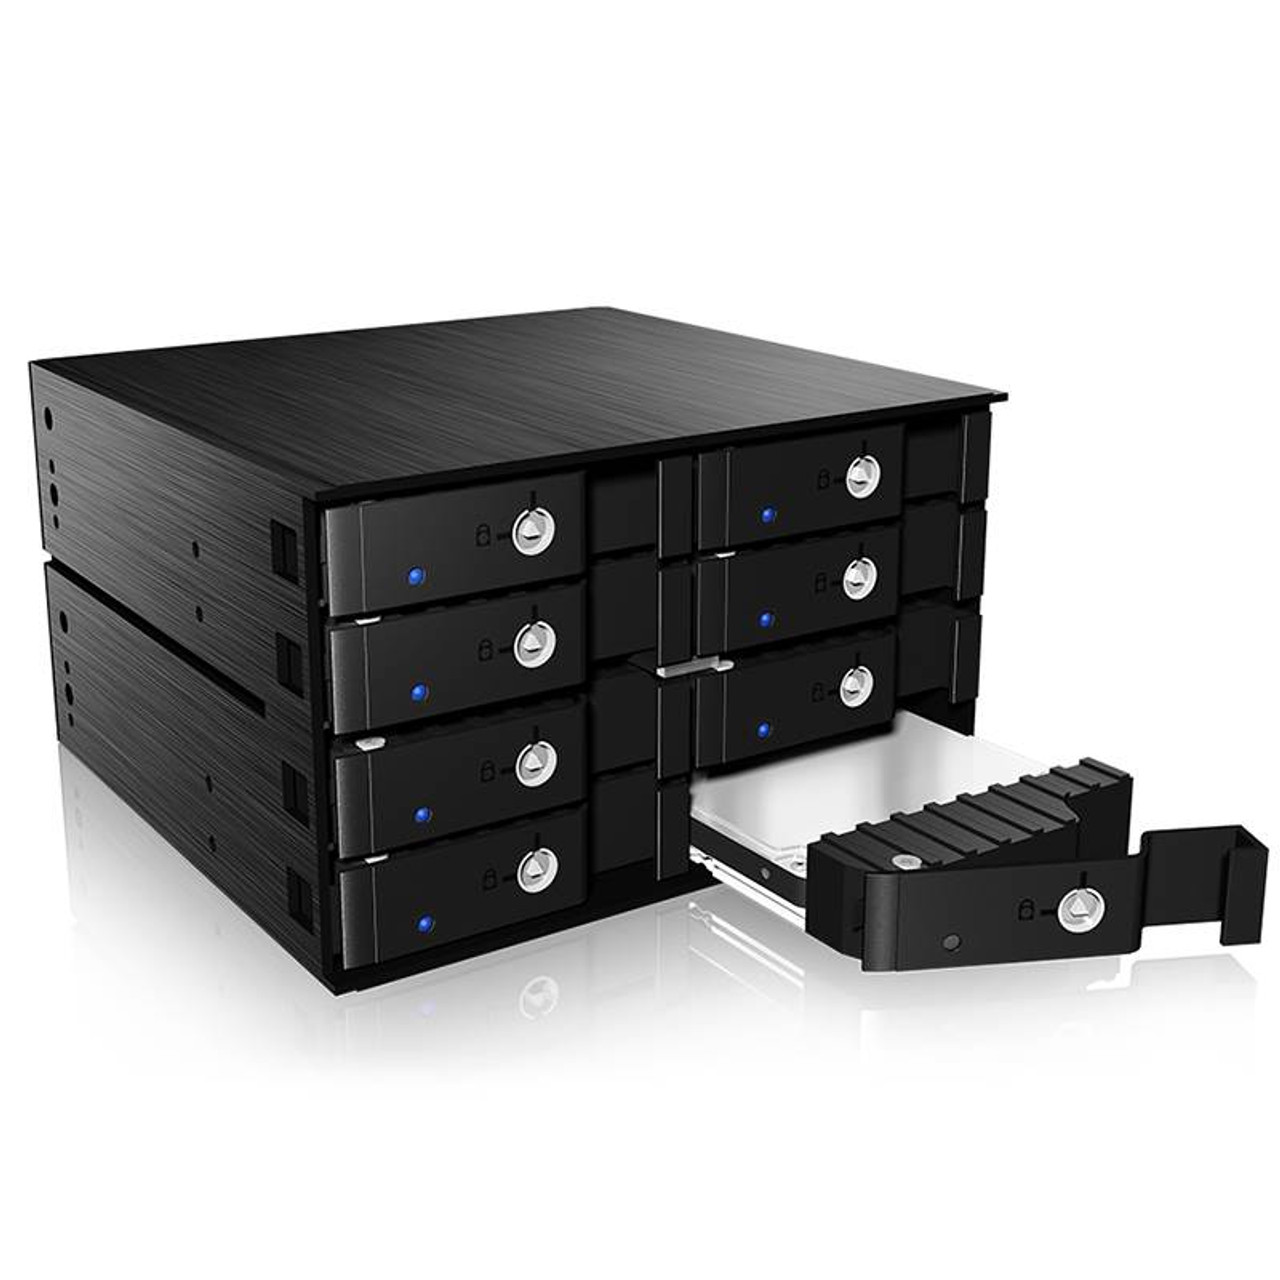 Product image for ICY BOX IB-2280SSK 8-Bay SATA/SAS HDD/SSD Backplane | CX Computer Superstore